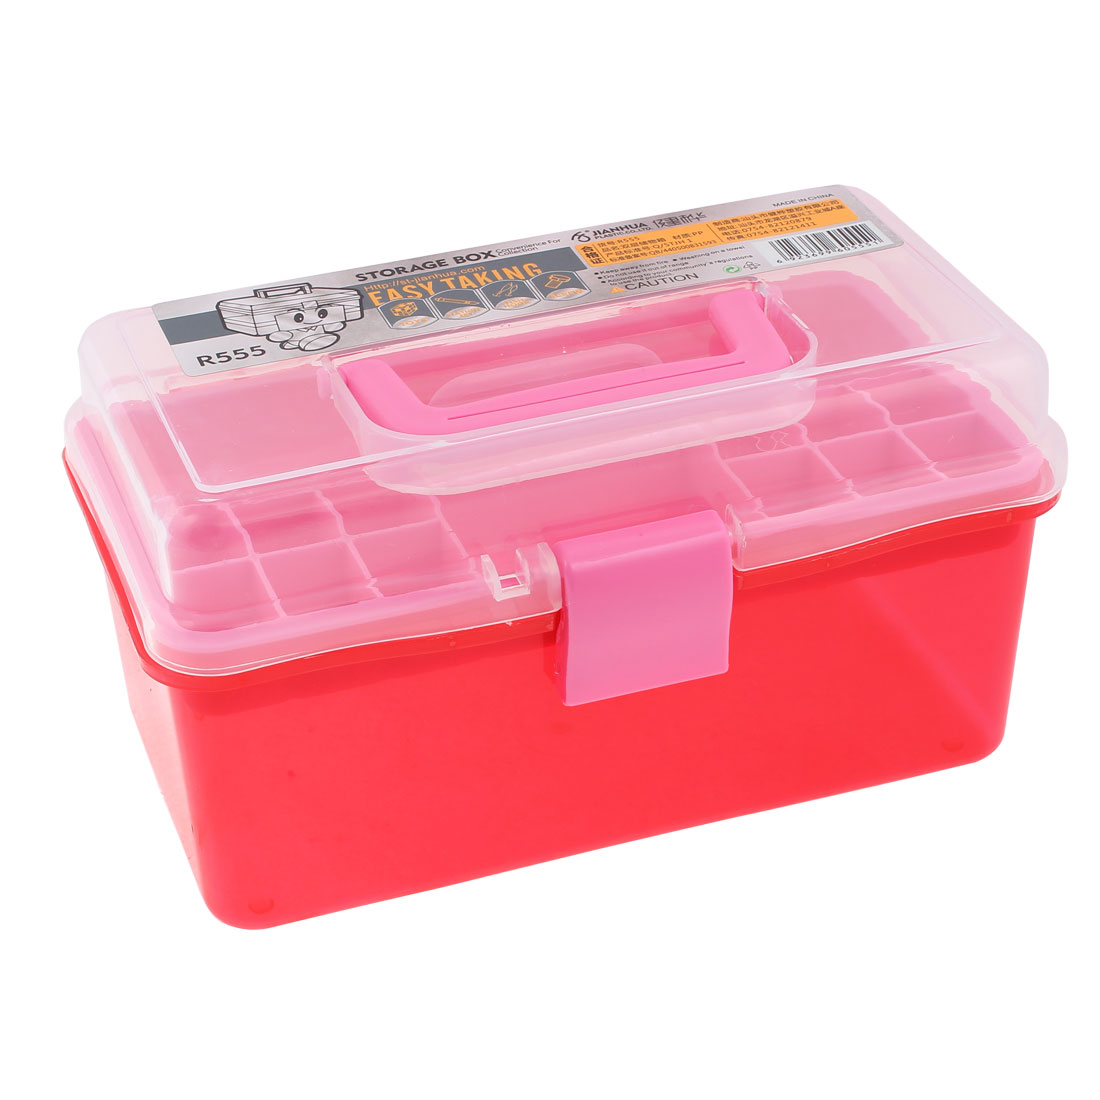 Plastic 2 Layers Nail Art Craft Makeup Fish Hook Screws Storage Box Case Red